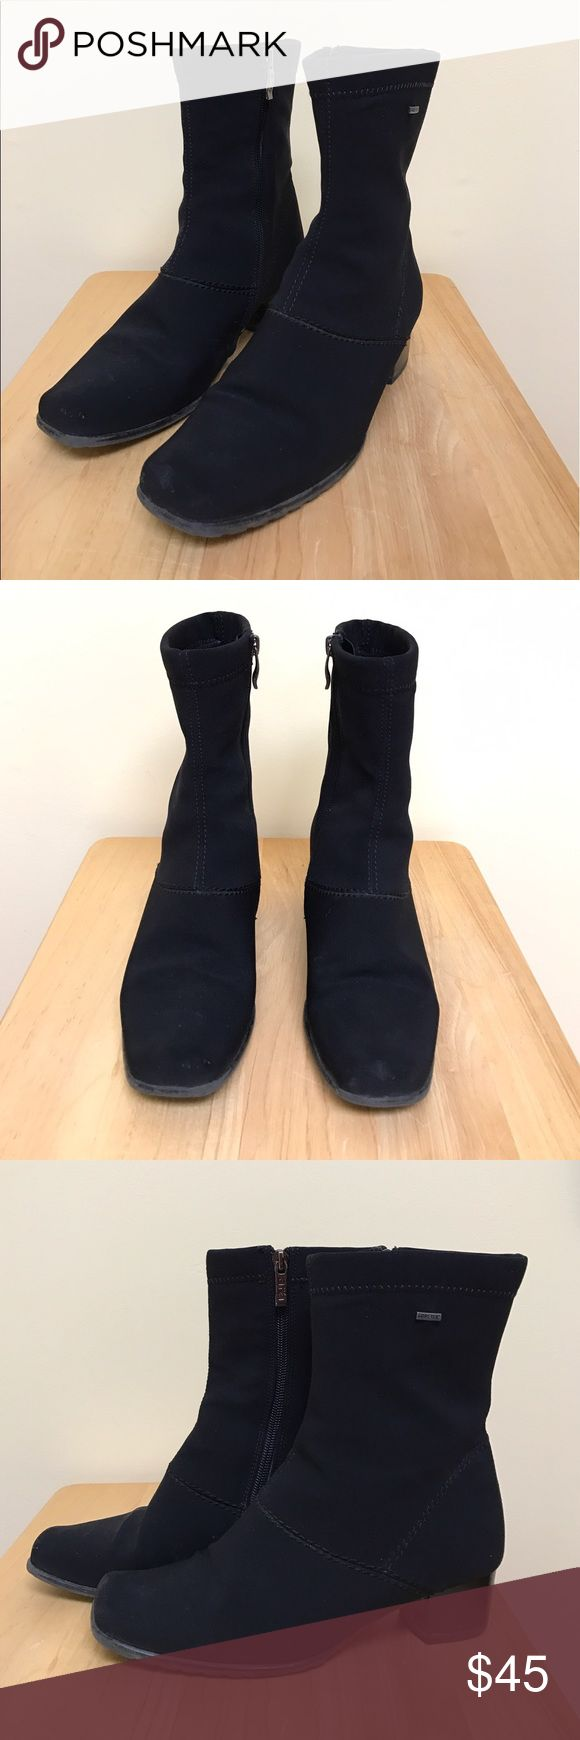 ara | goretex boots Cute, comfortable, and water-resistant boots by ara. Fit a size 7. Good pre-owned condition, minimal signs of wear. Ara Shoes Winter & Rain Boots